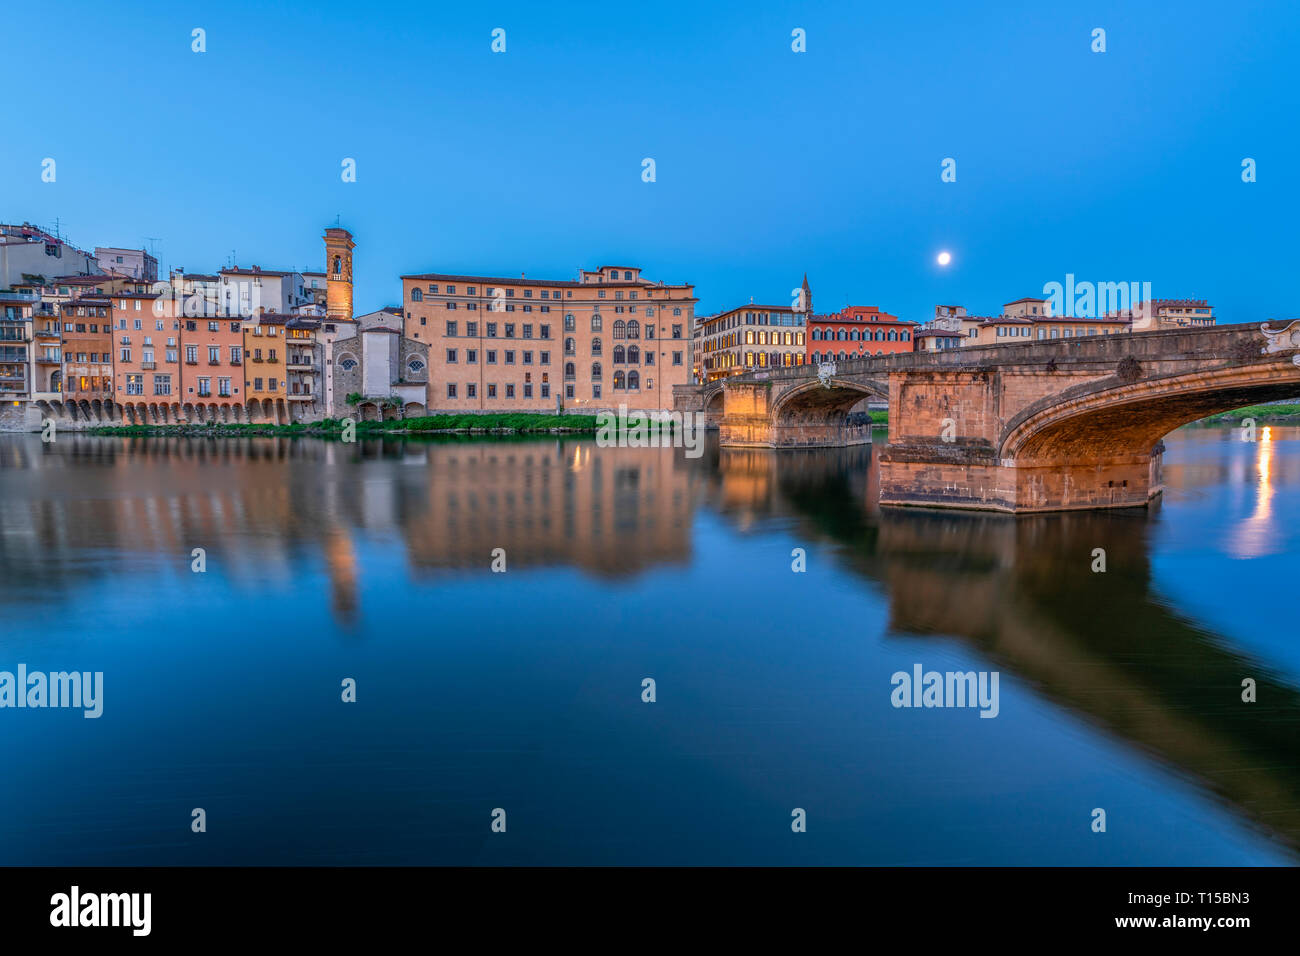 Italy, Tuscany, Florence, Ponte Vecchio at blue hour - Stock Image